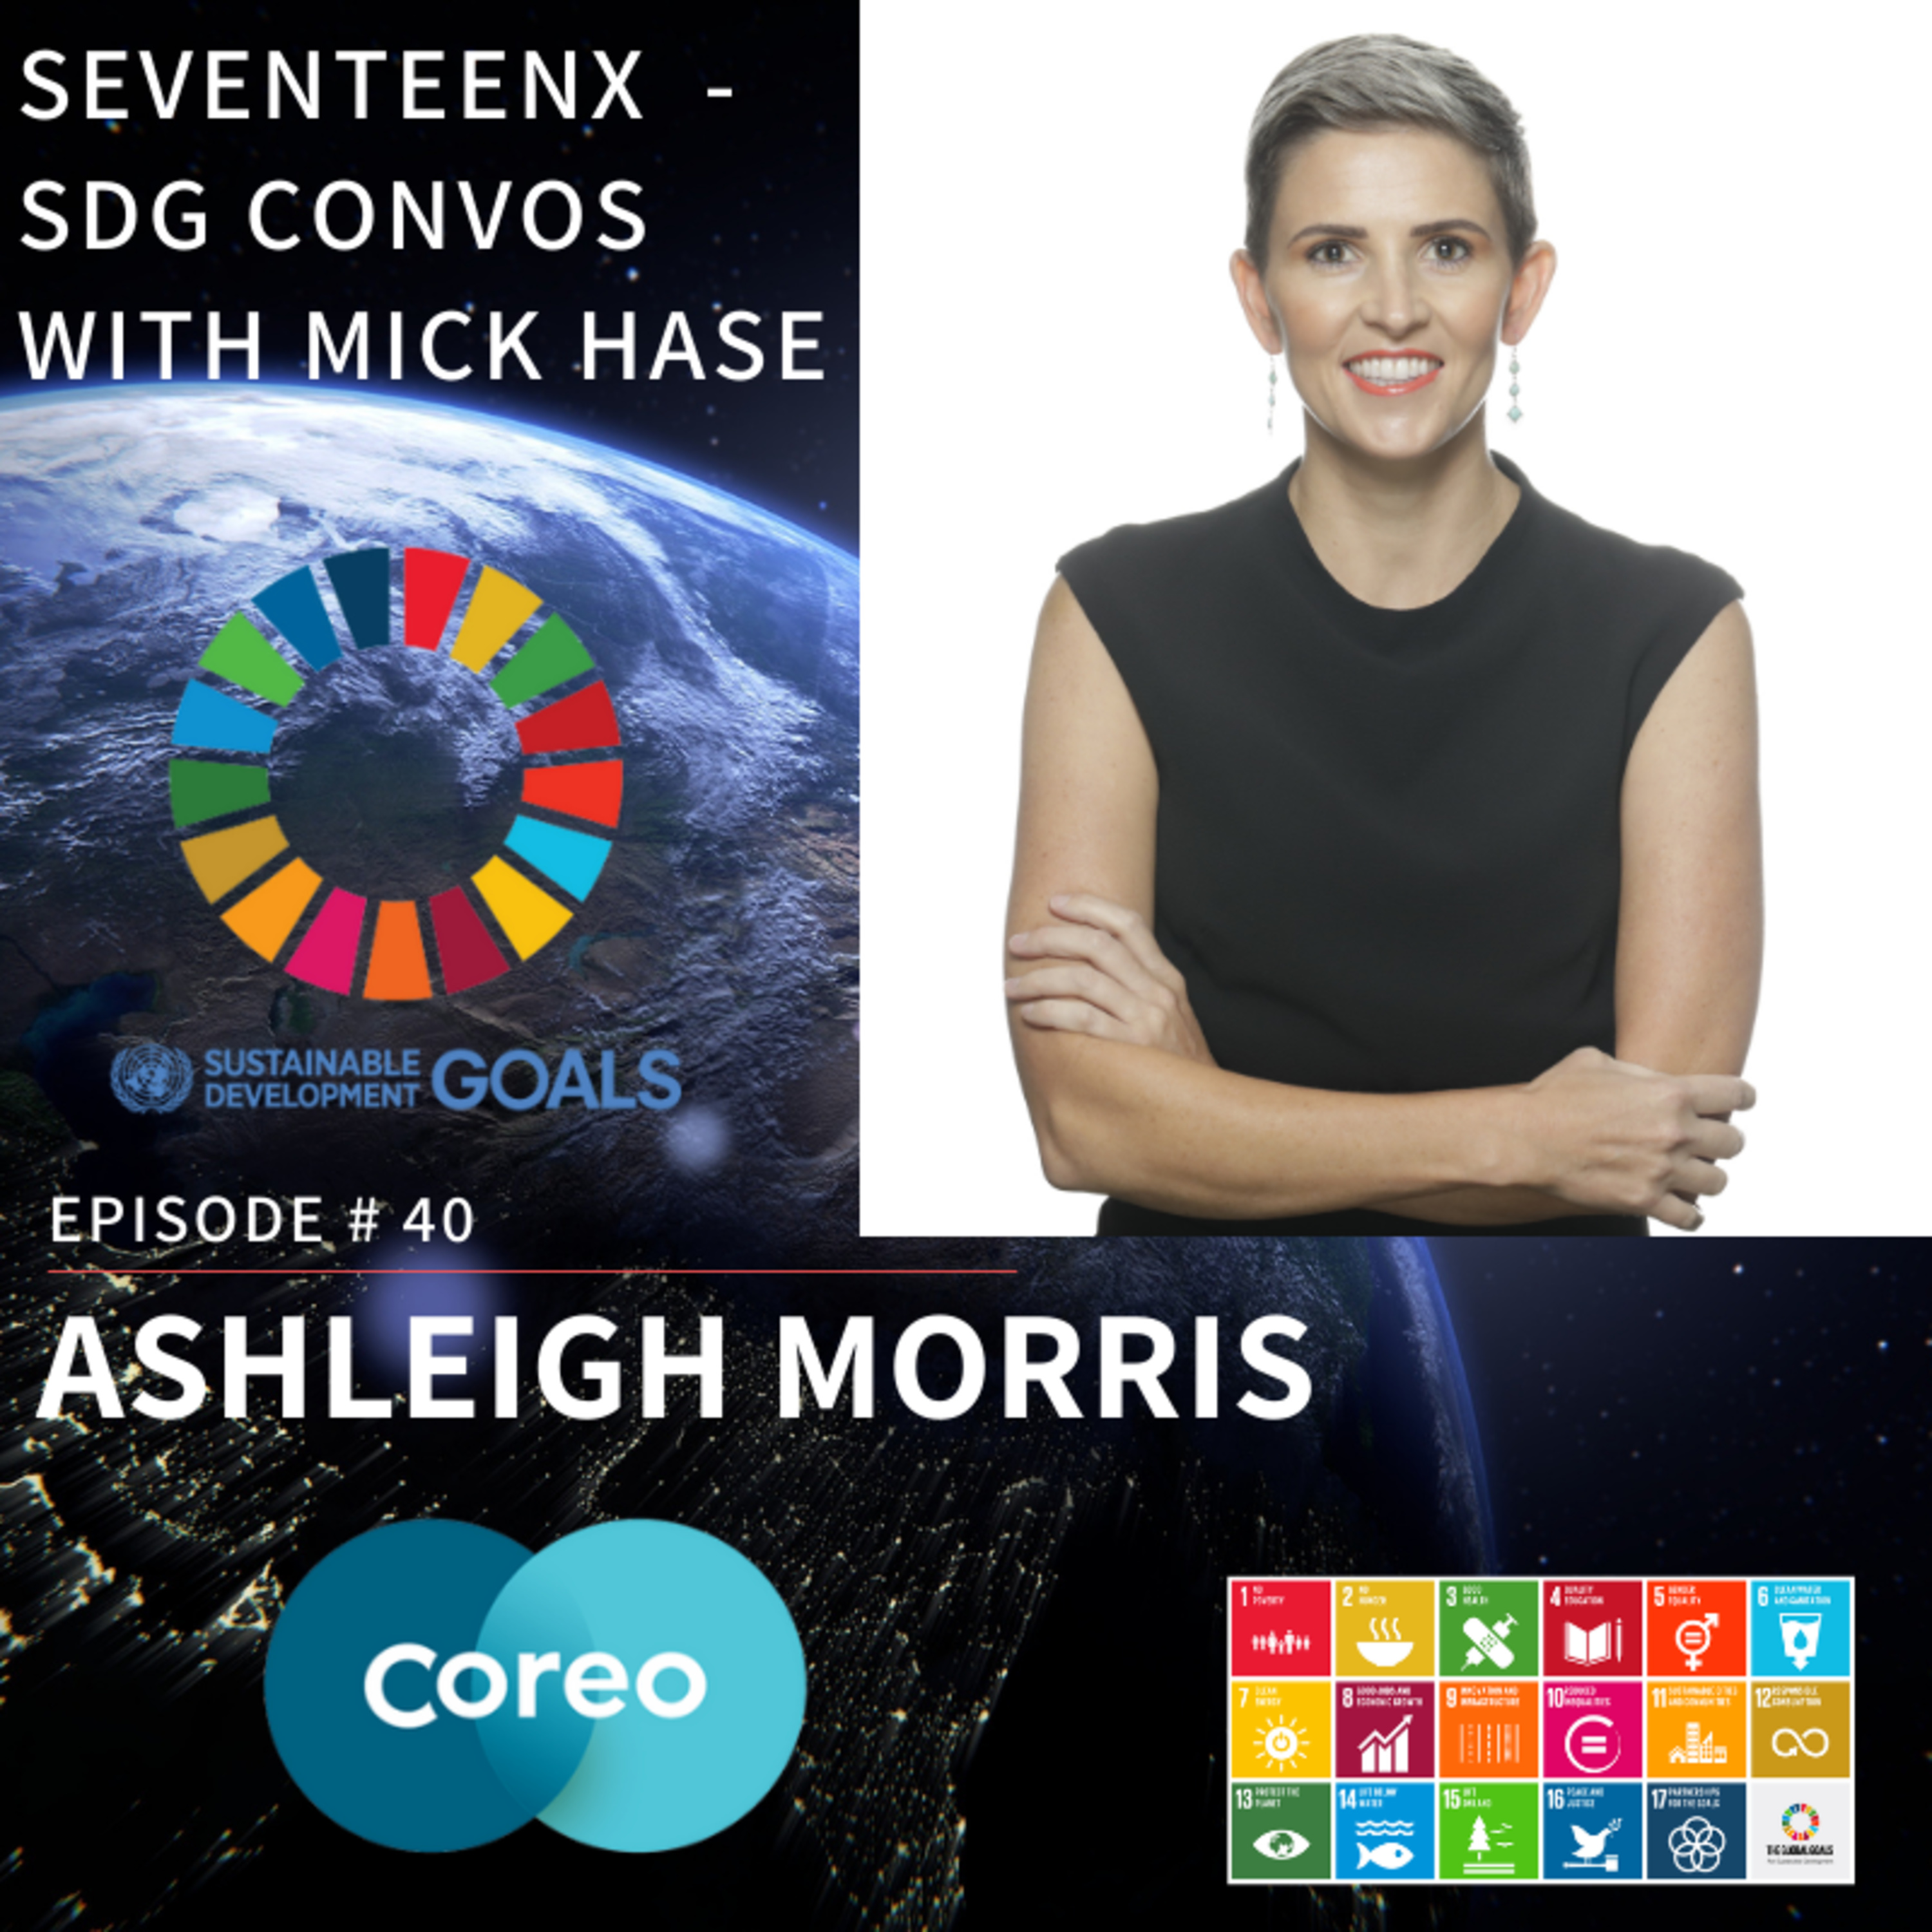 Lessons on Circular Economy from the garden with Ashleigh Morris